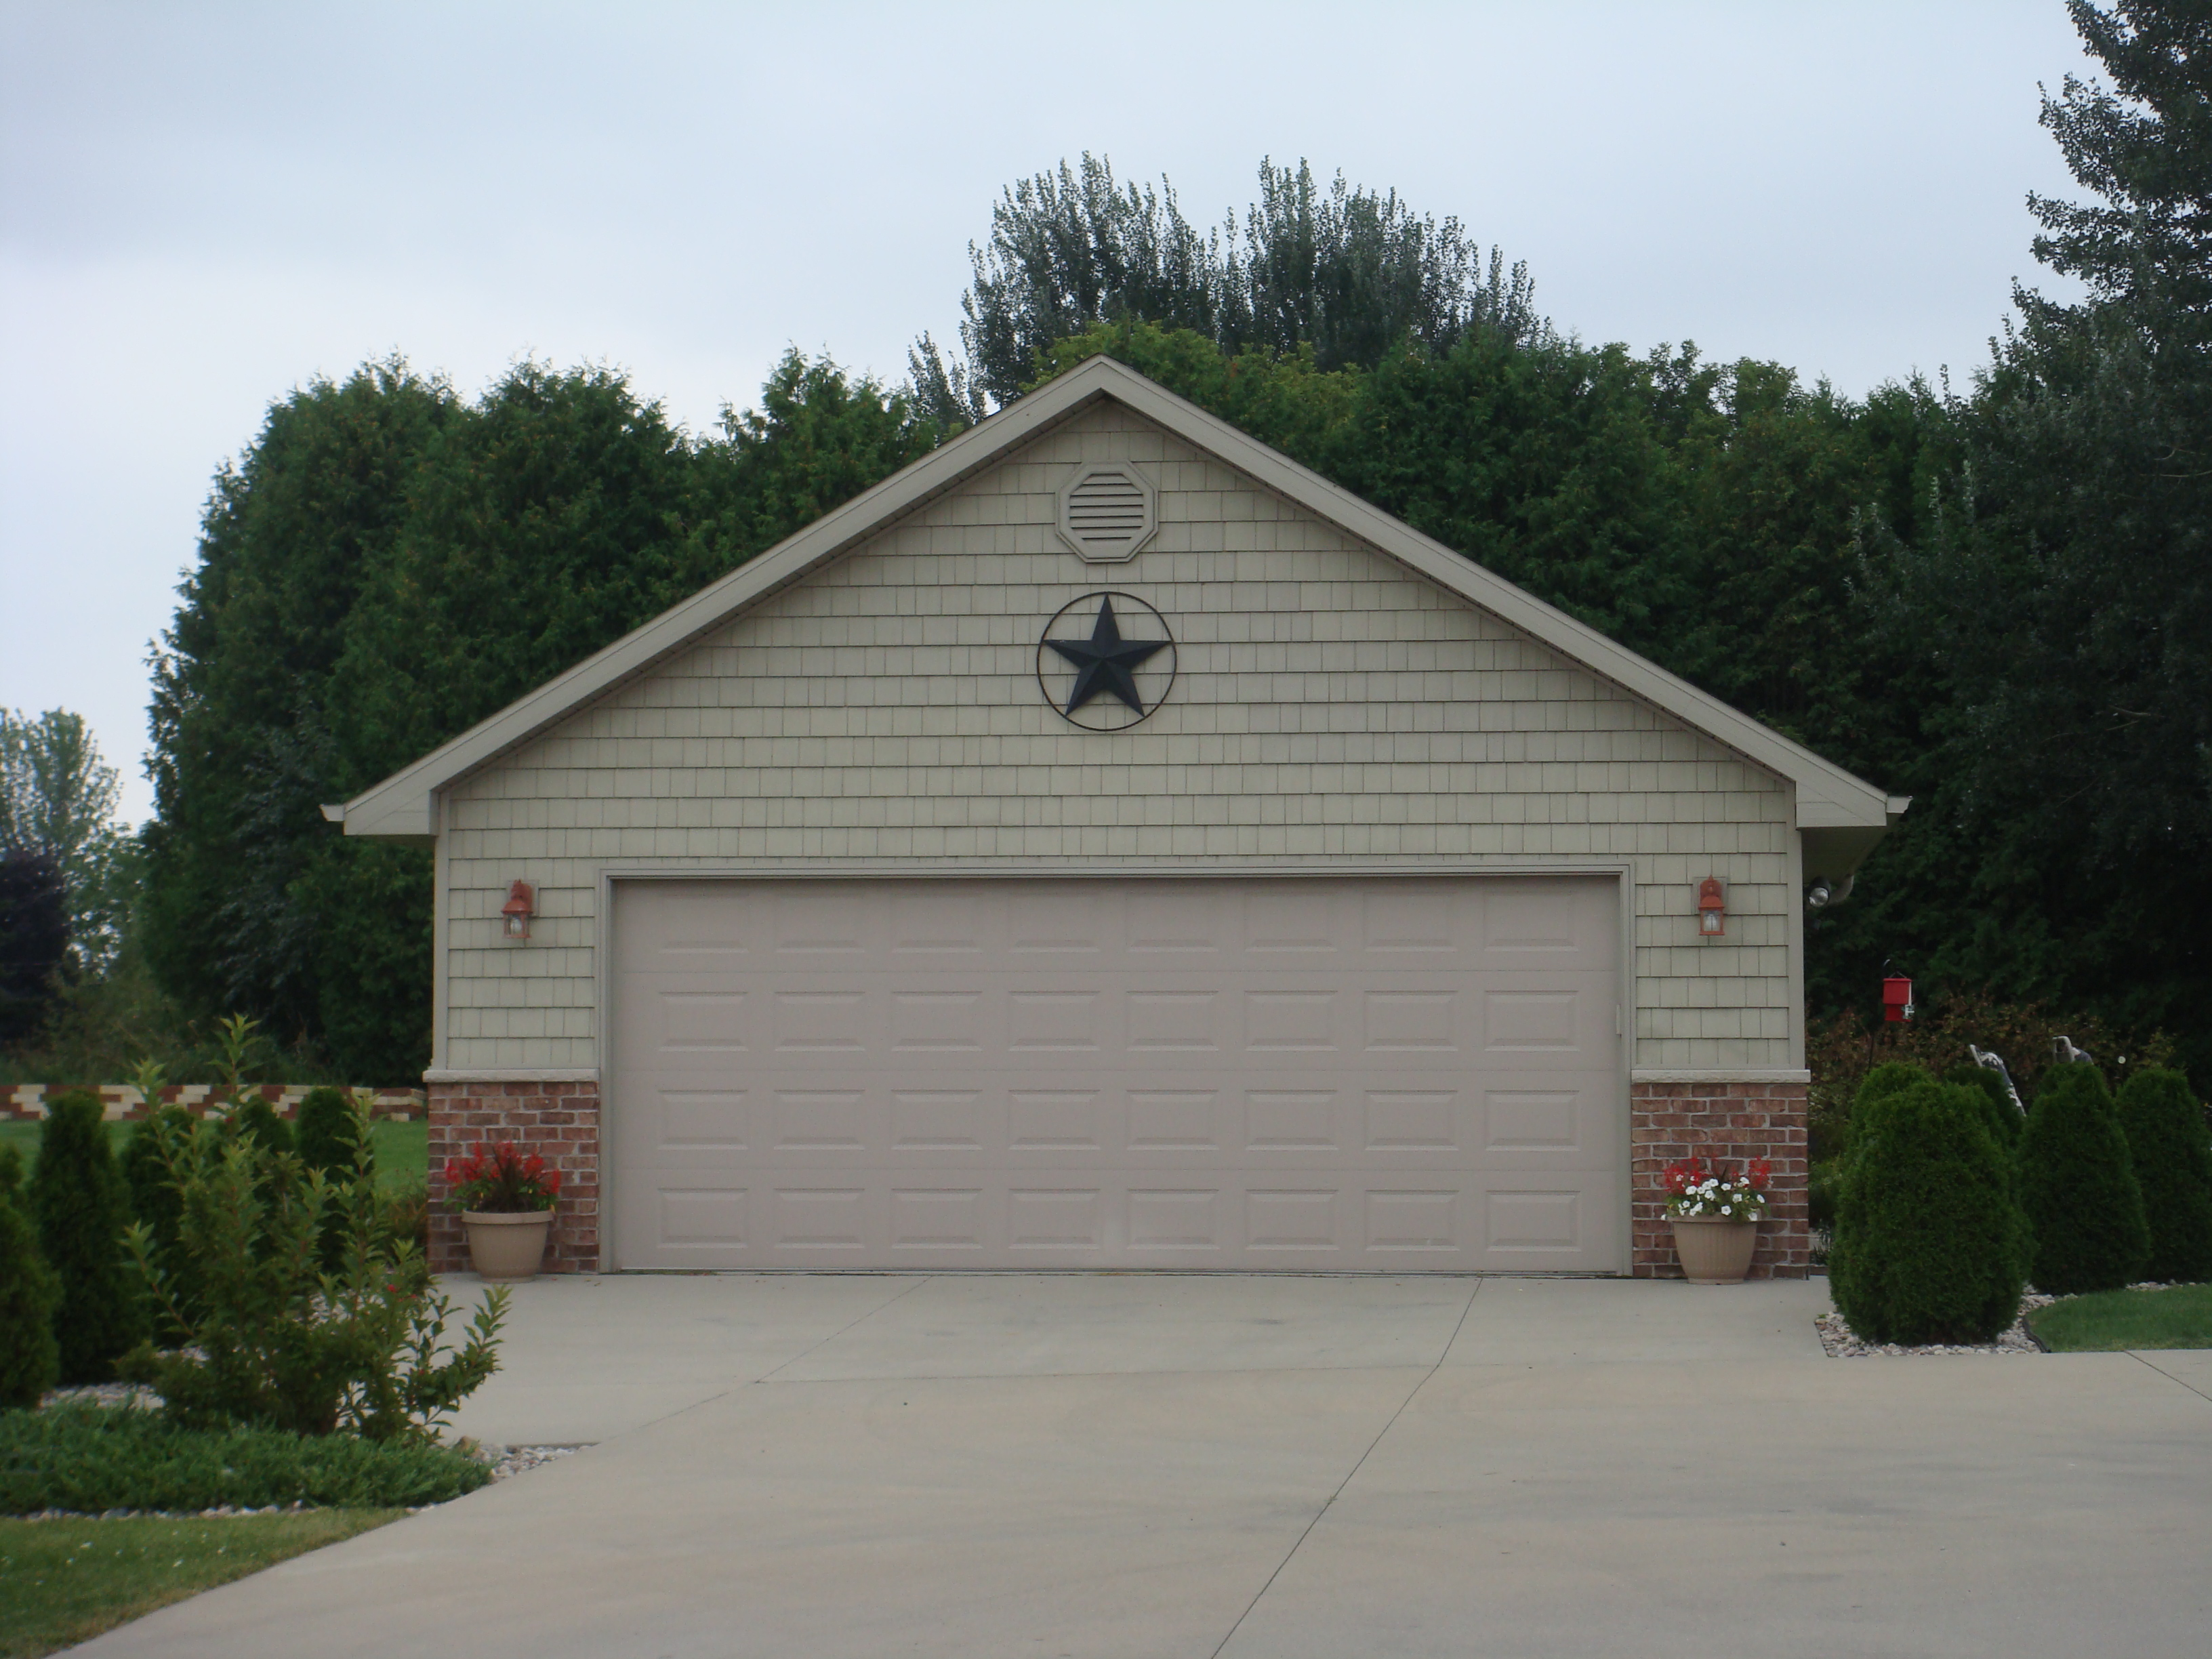 2 car garage brian gorges construction llc for 1 5 car garage size